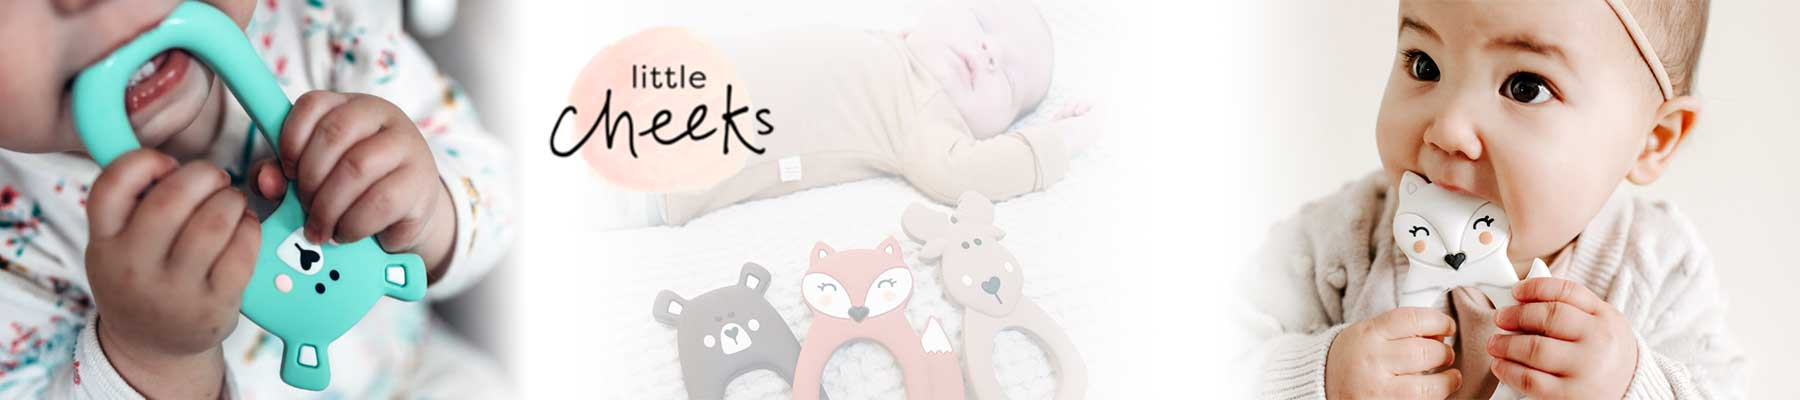 Little Cheeks, Grabbable Silicone Teethers